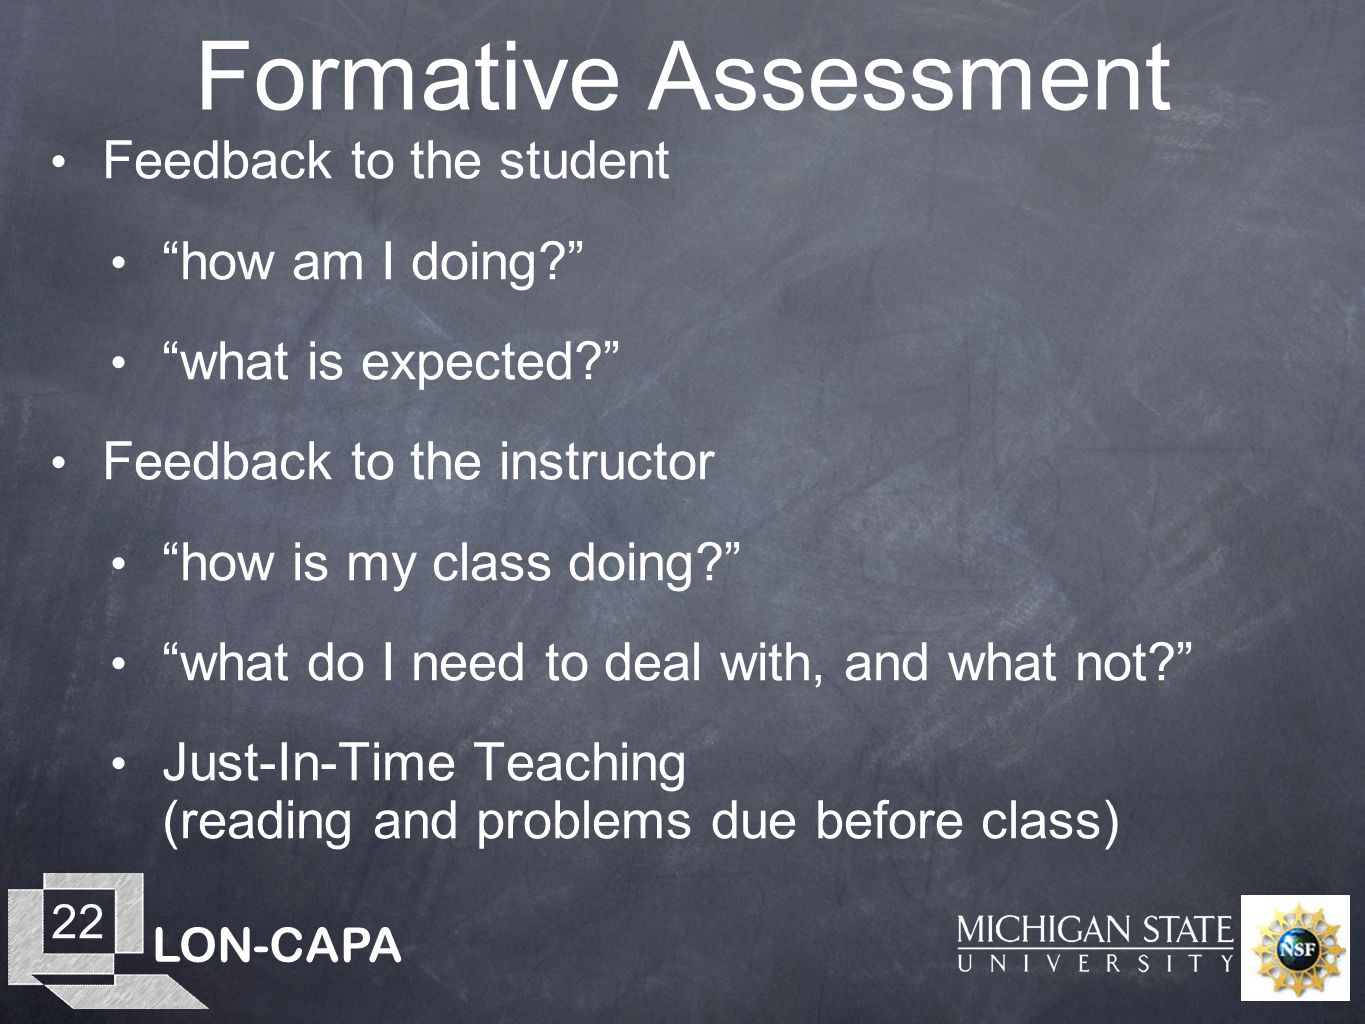 """LON-CAPA 22 Formative Assessment Feedback to the student """"how am I doing?"""" """"what is expected?"""" Feedback to the instructor """"how is my class doing?"""" """"wh"""